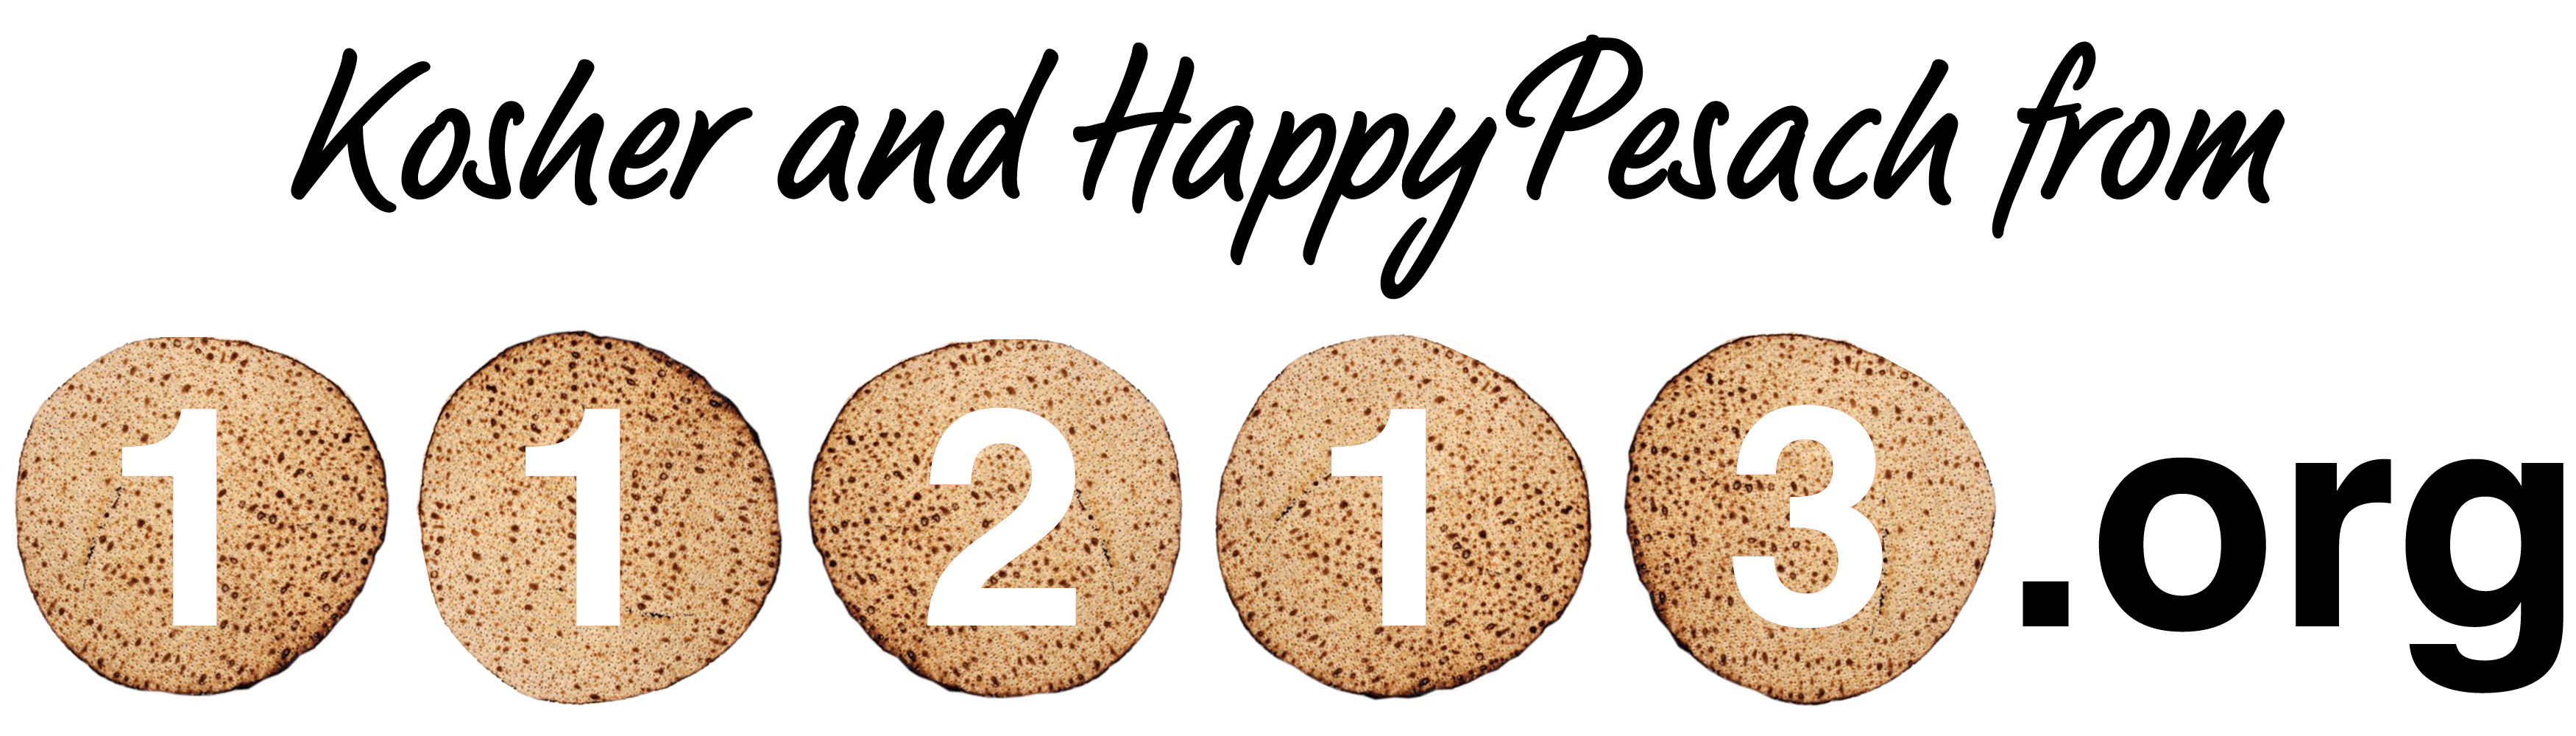 Kosher and Happy Pesach From 11213.org